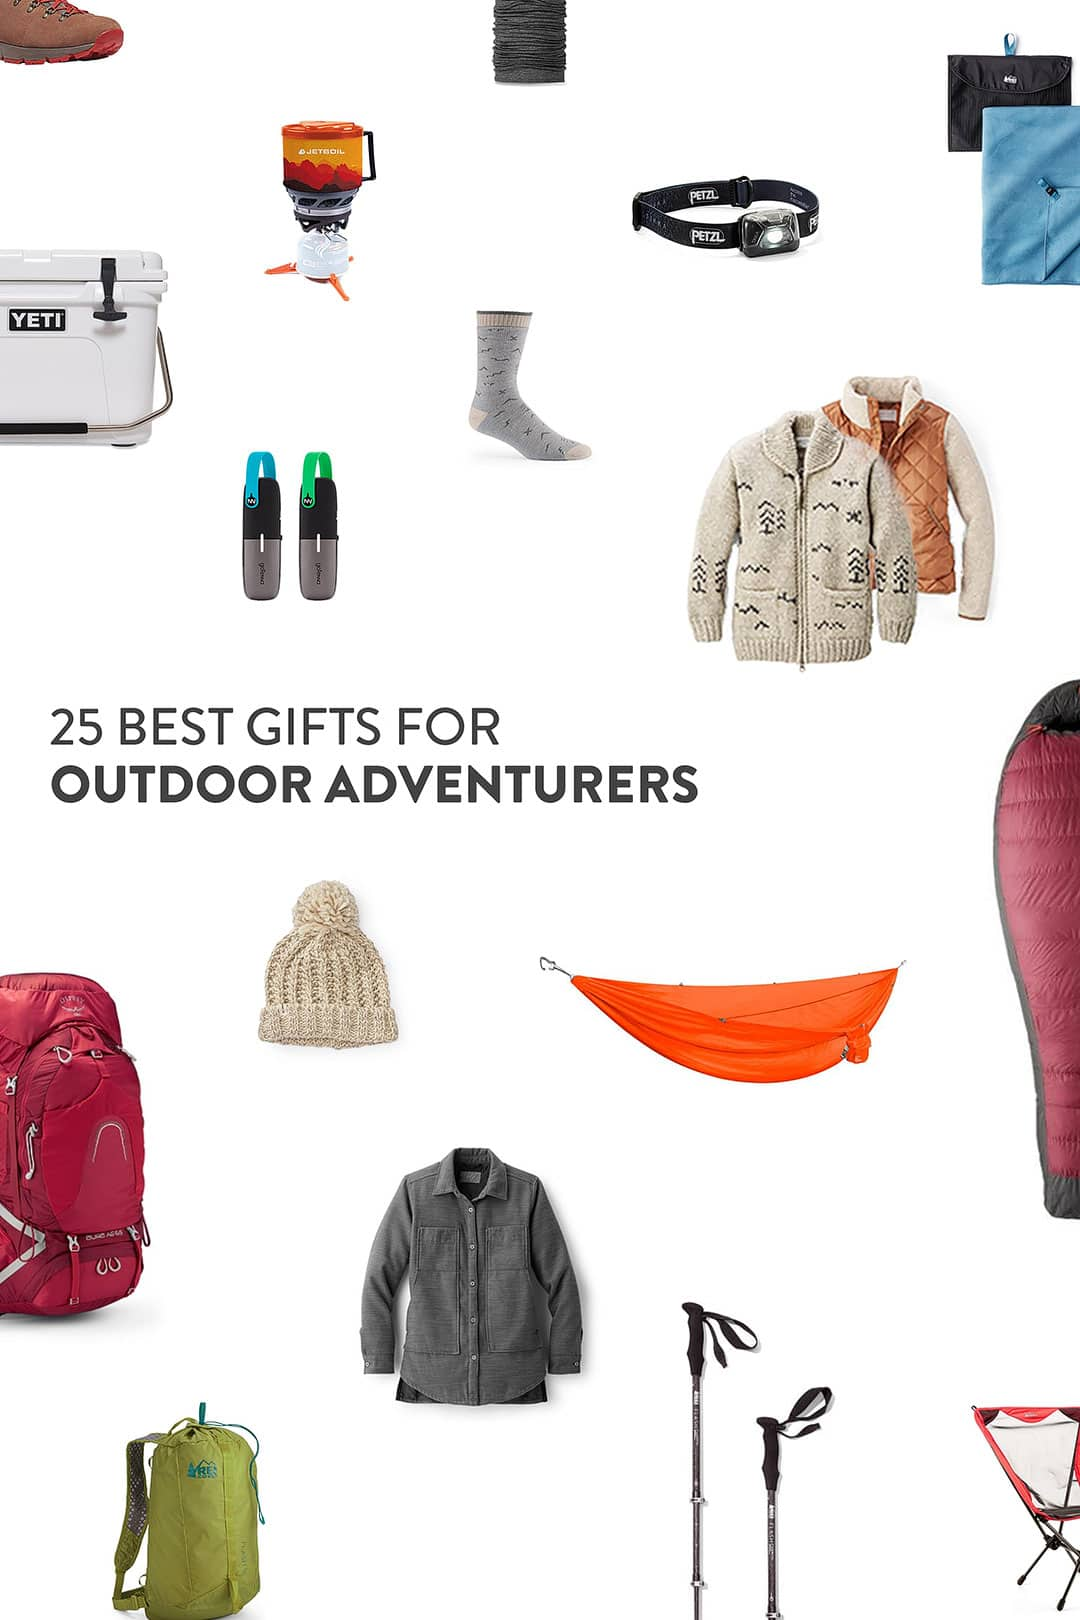 The Ultimate Outdoor Gift Guide Your Outdoorsy Friends Will Love and Use